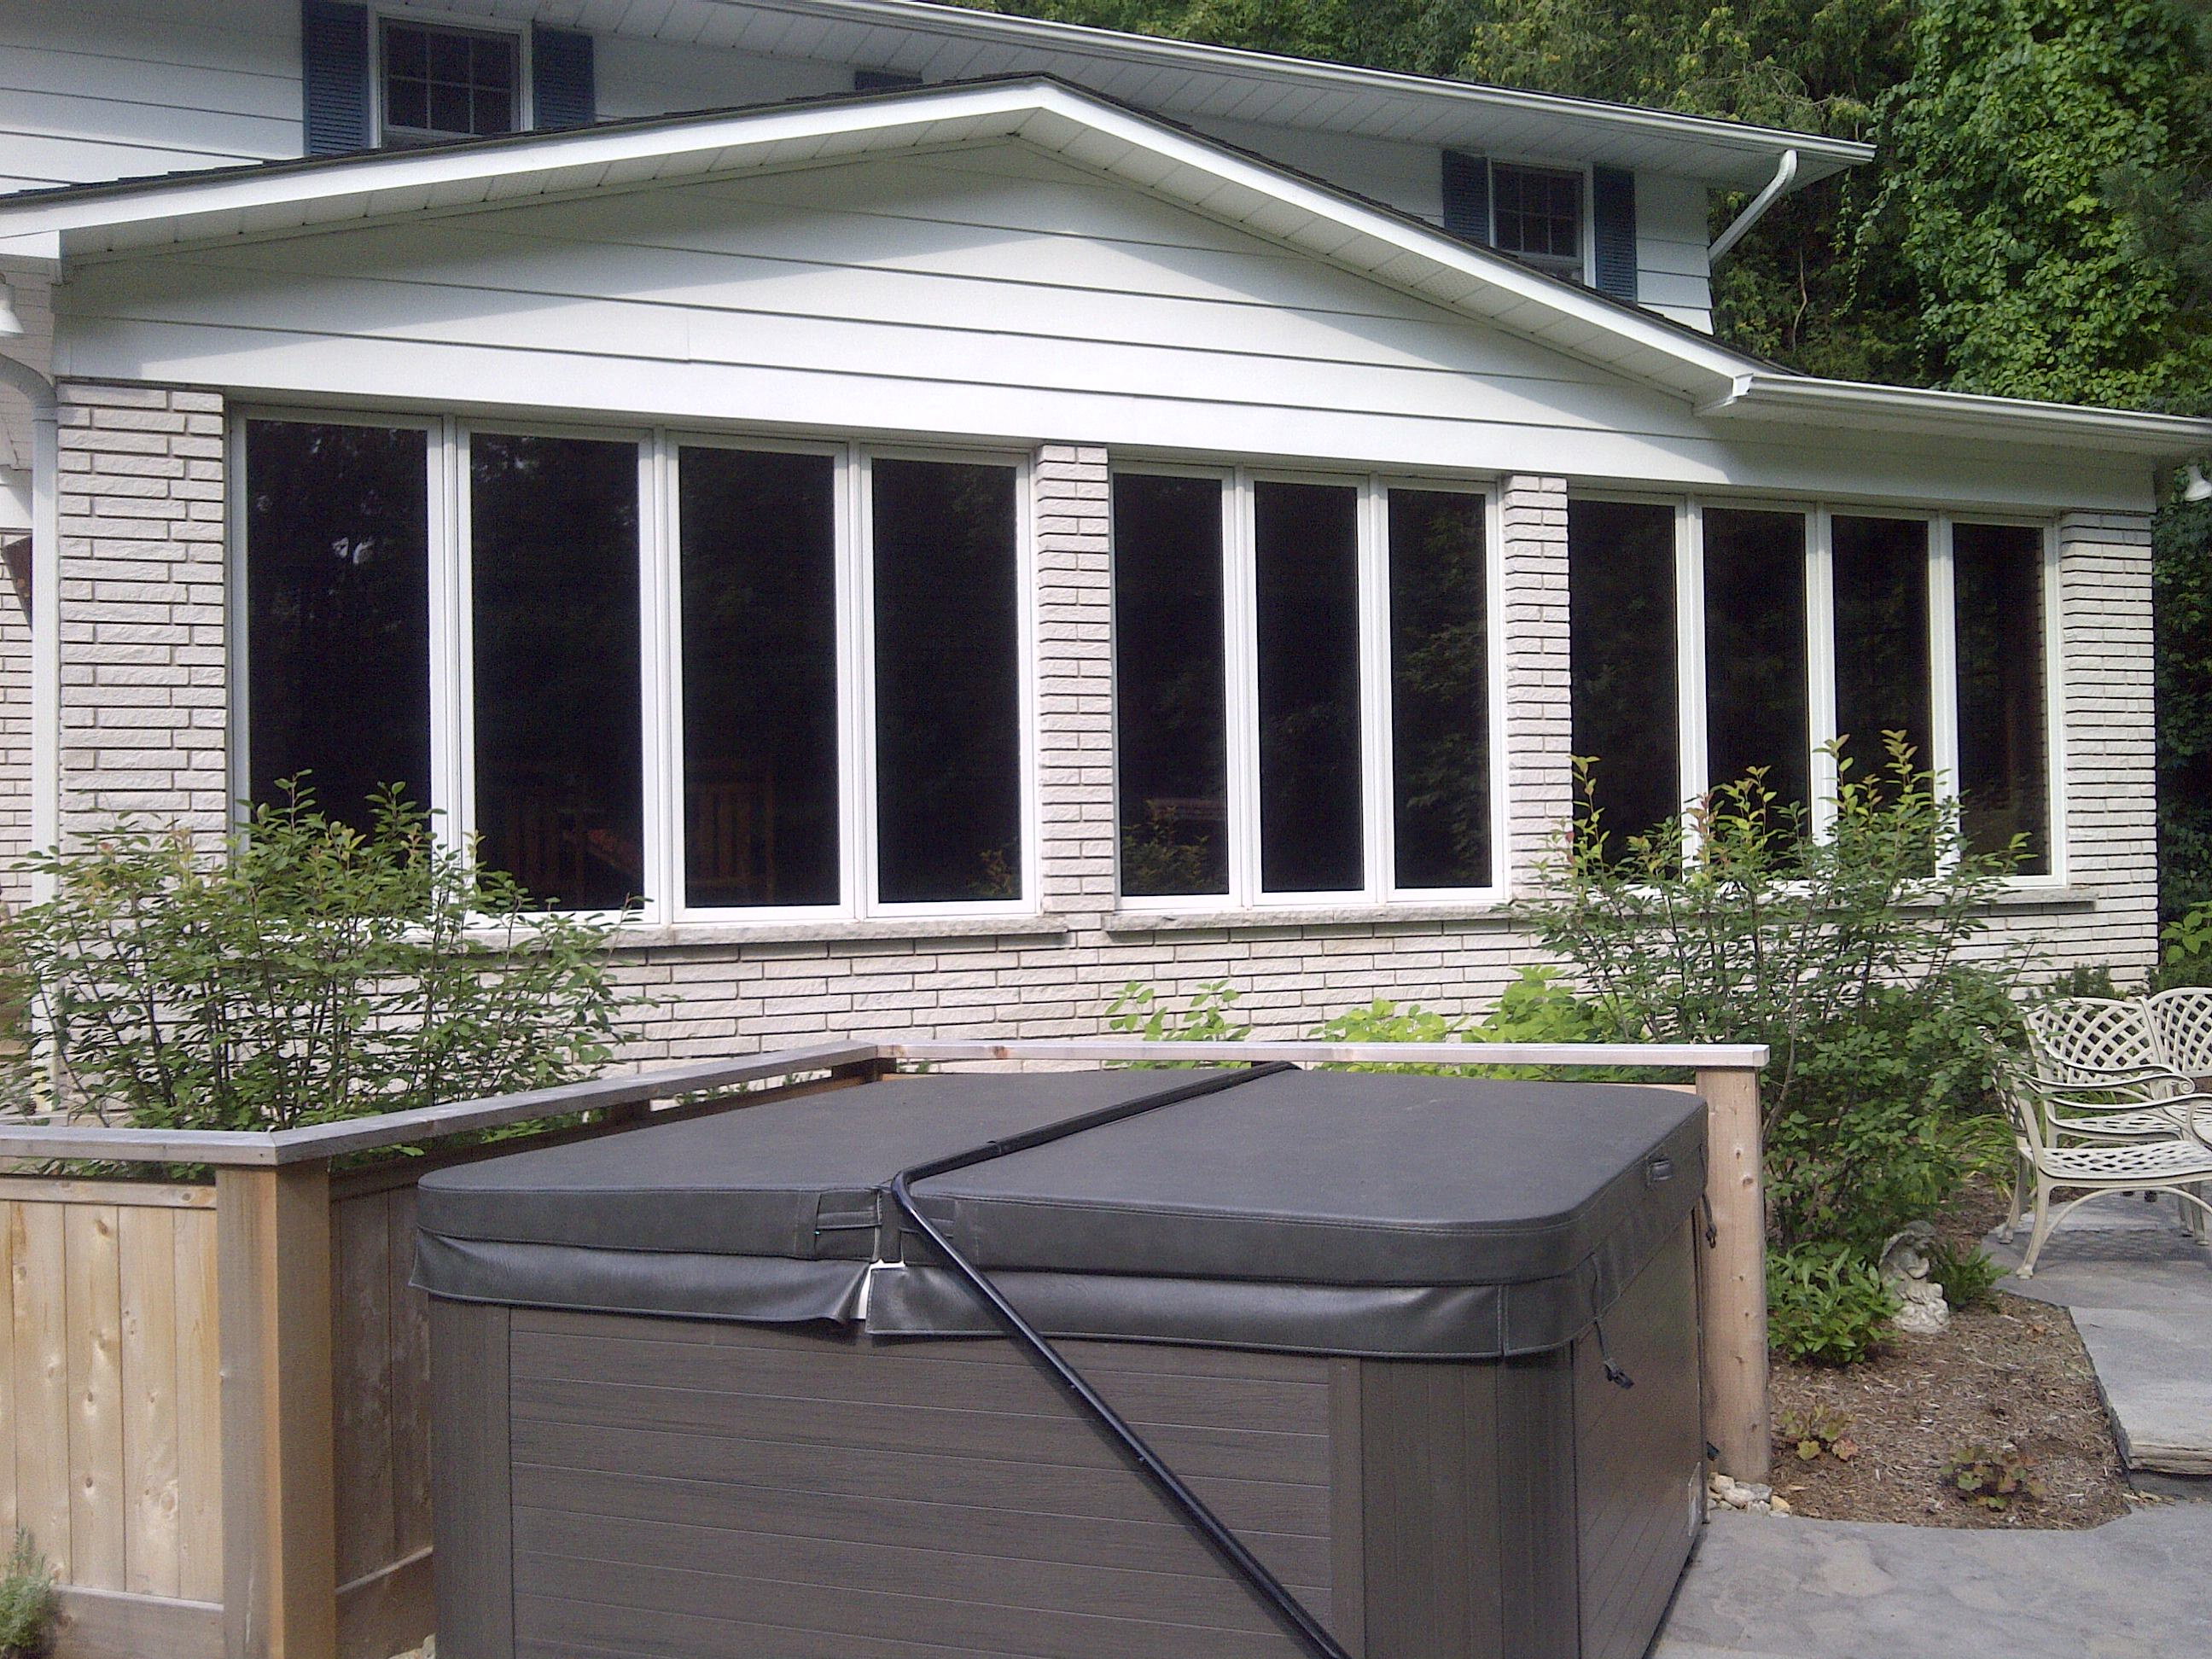 Window tinting films and architectural finishes barrie muskoka guelph home window tint - Exterior window tint for homes ...